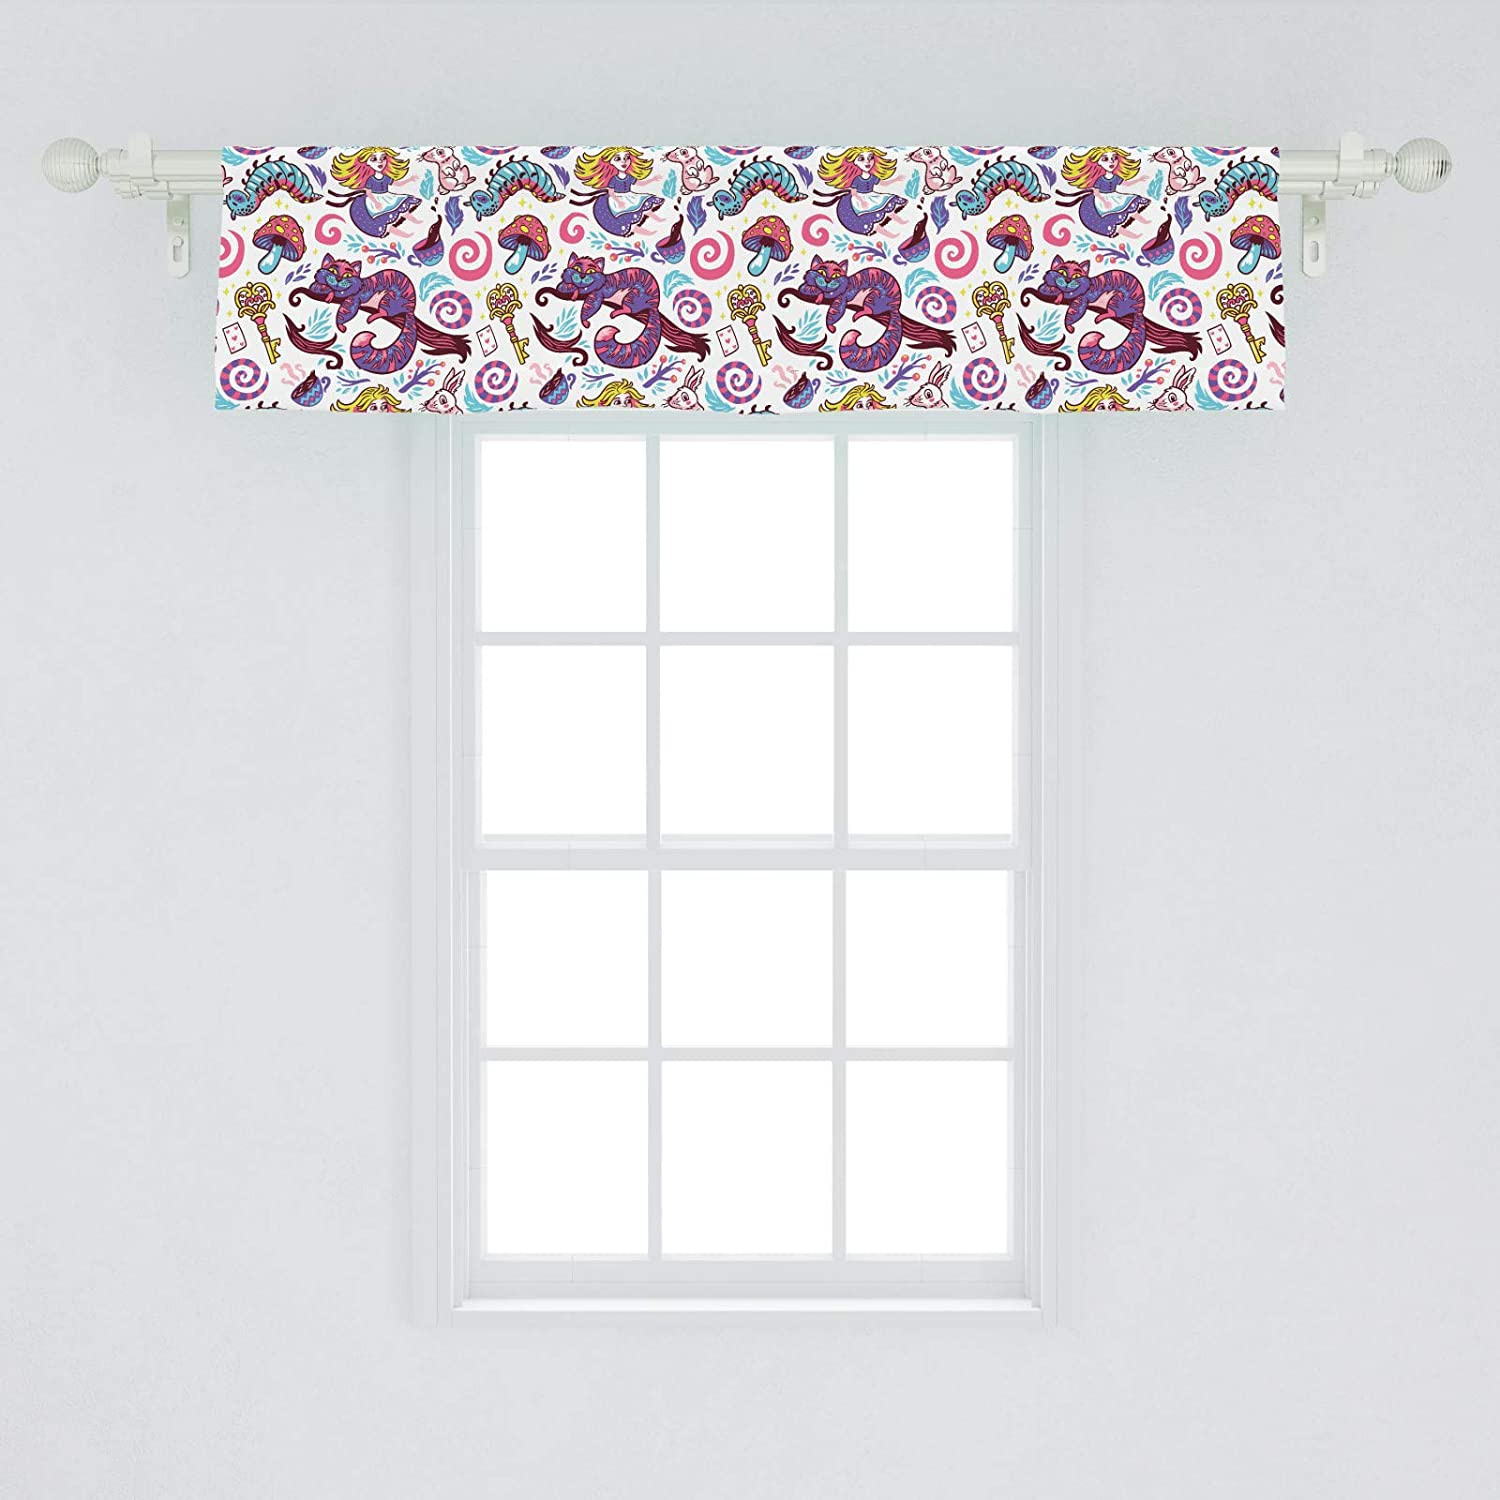 Ambesonne Alice In Wonderland Window Valance Fantasy World Fairy Tale Concept With Hand Drawn Caterpillar Cat Rabbit Curtain Valance For Kitchen Bedroom Decor With Rod Pocket 54 X 12 Purple Aqua Amazon In Home